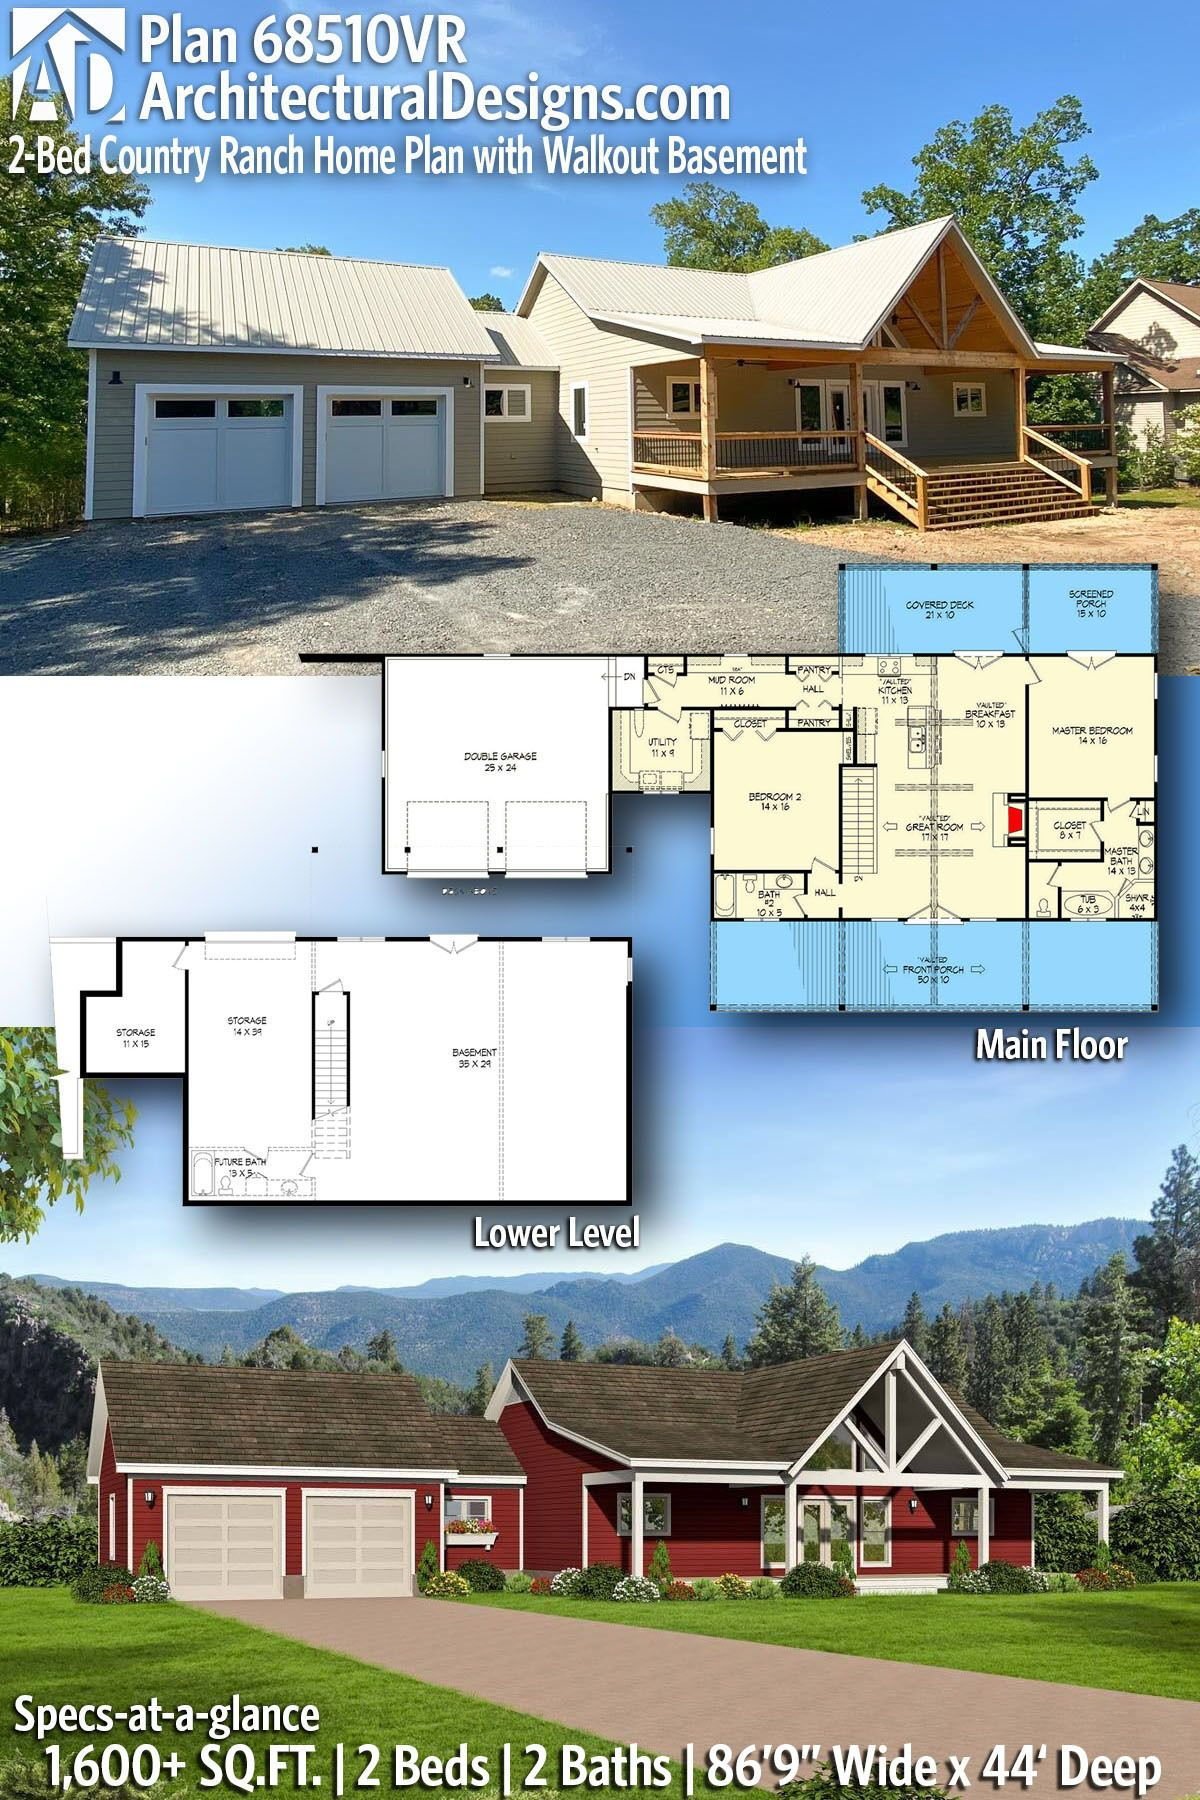 Plan 68510vr 2 Bed Country Ranch Home Plan With Walkout Basement In 2021 Ranch House Plans Country House Plans House Plans Farmhouse